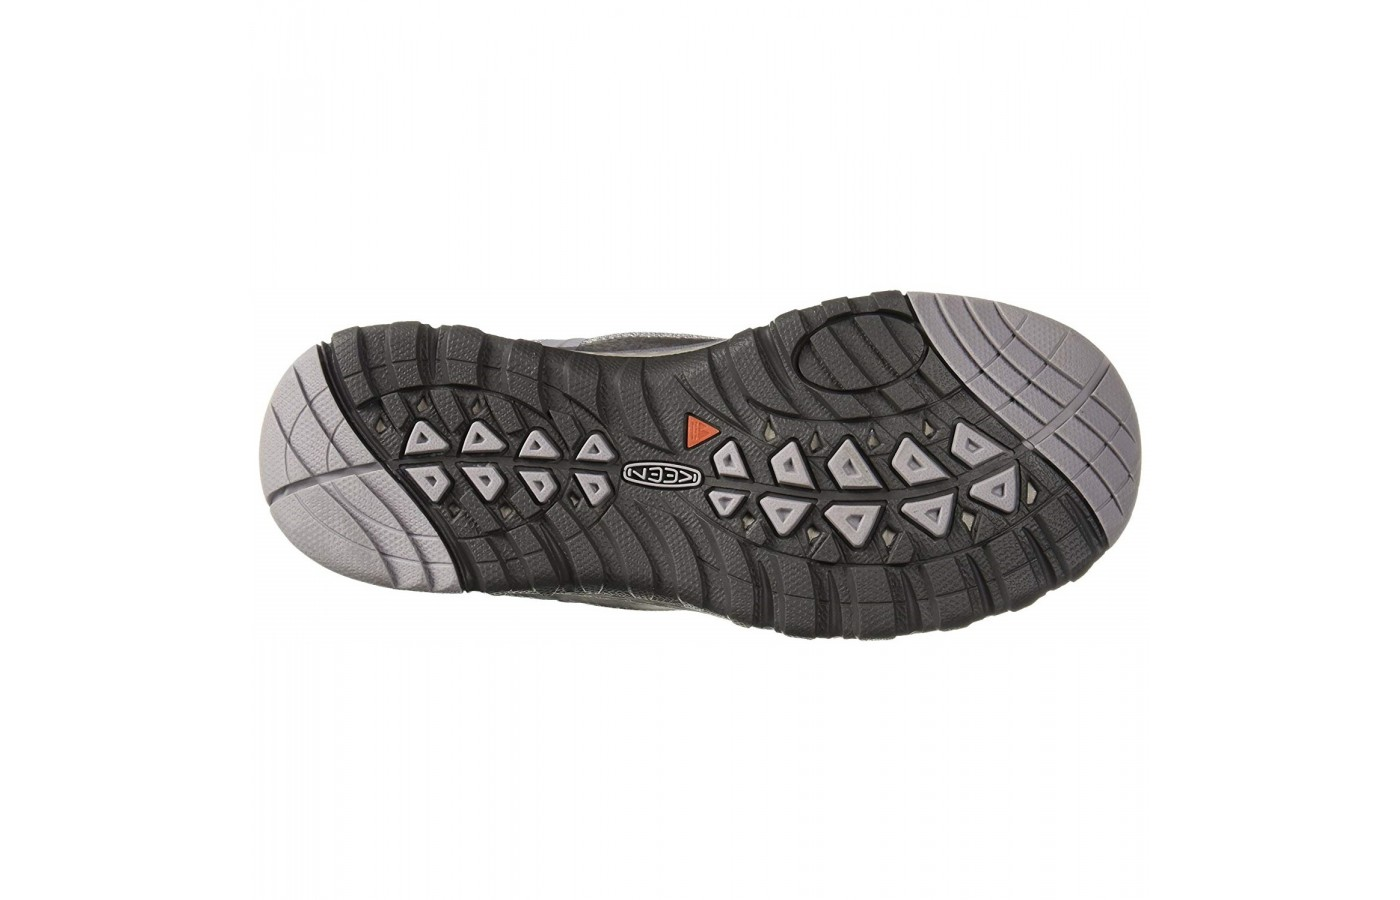 The Keen Terradora also offers a high traction grip which also offers superior traction on slippery and loose surfaces.